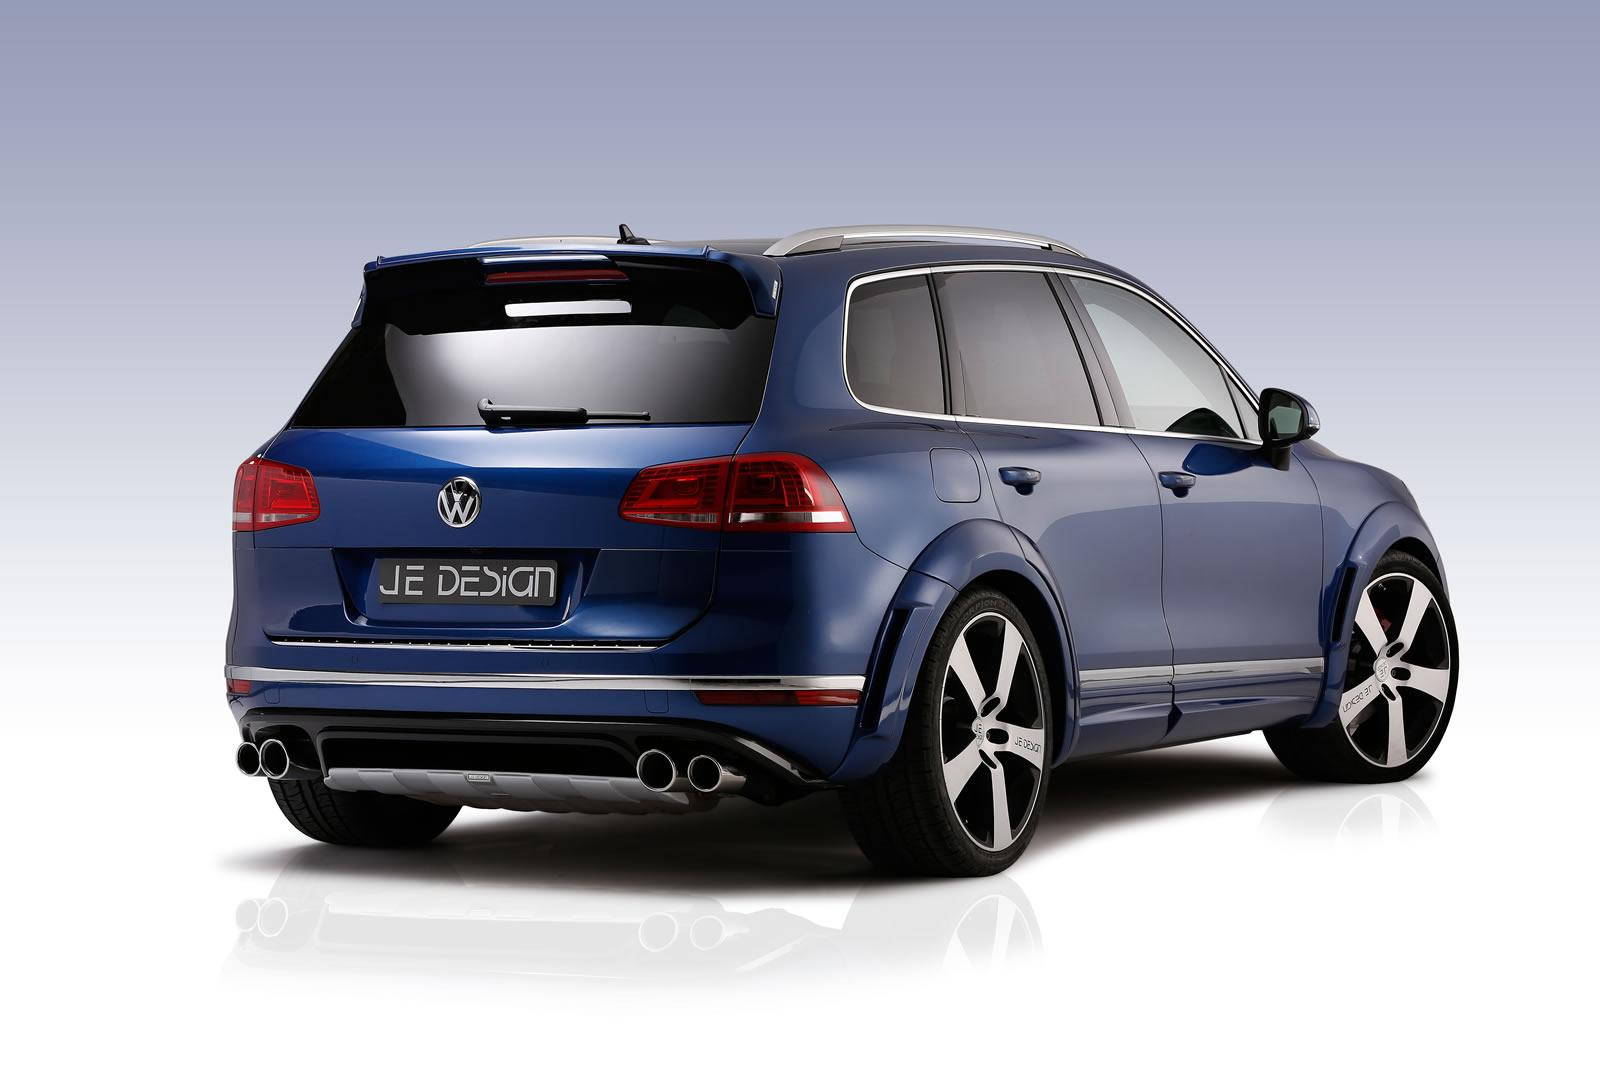 2015 Vw Touareg Hybrid V8 Tdi And Cayenne S Diesel Being